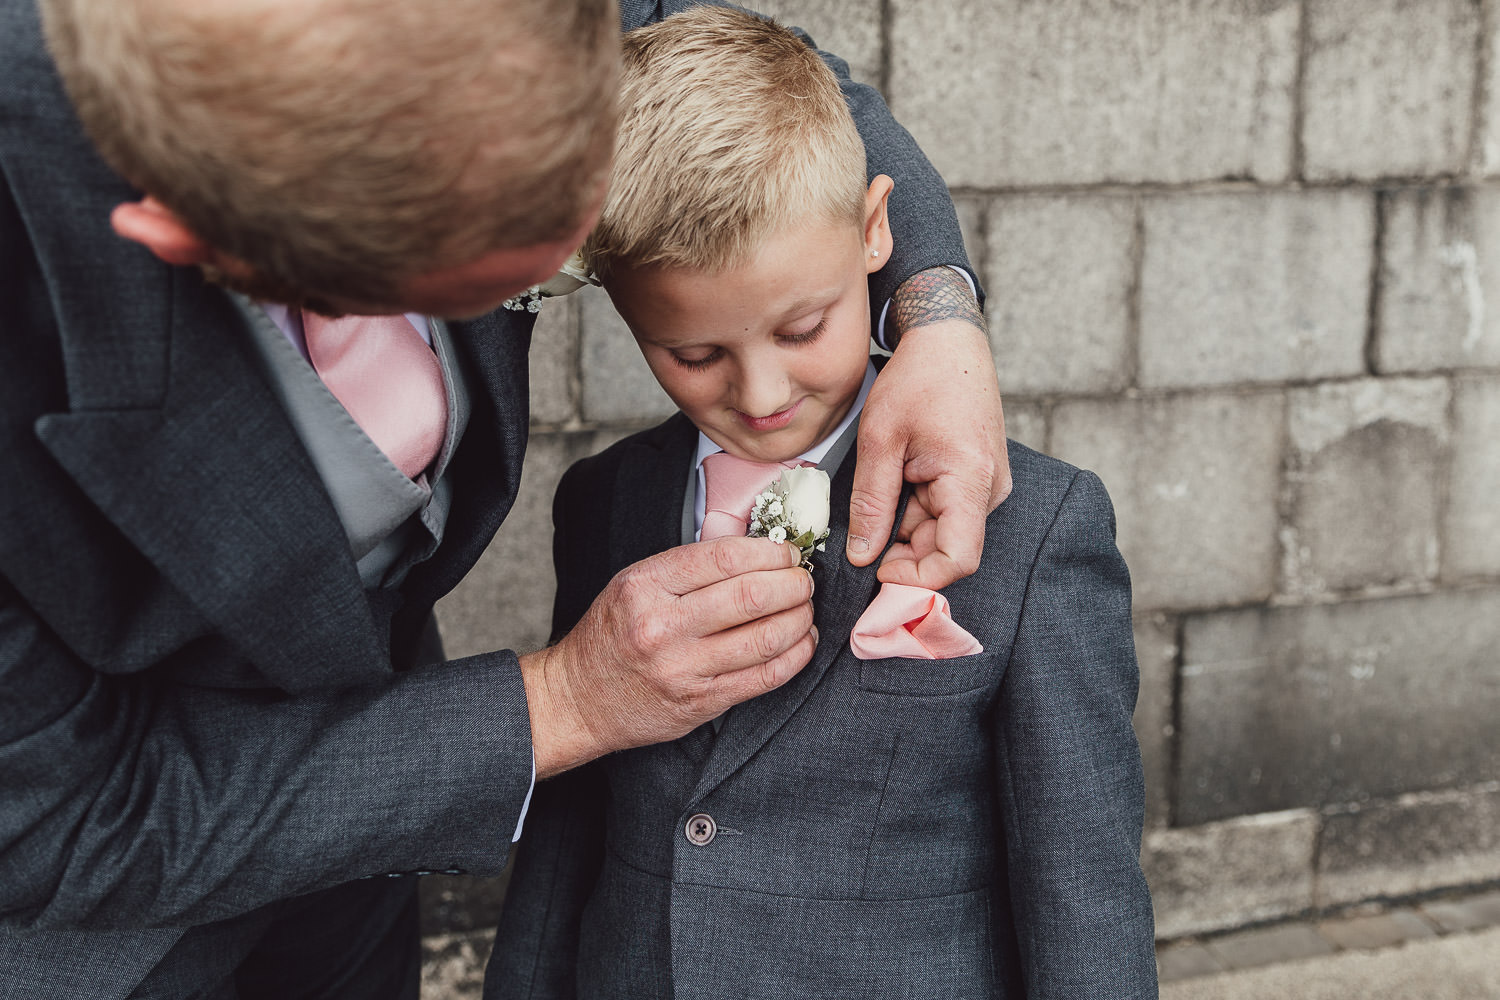 Norfolk norwich  wedding pinning on sons button hole